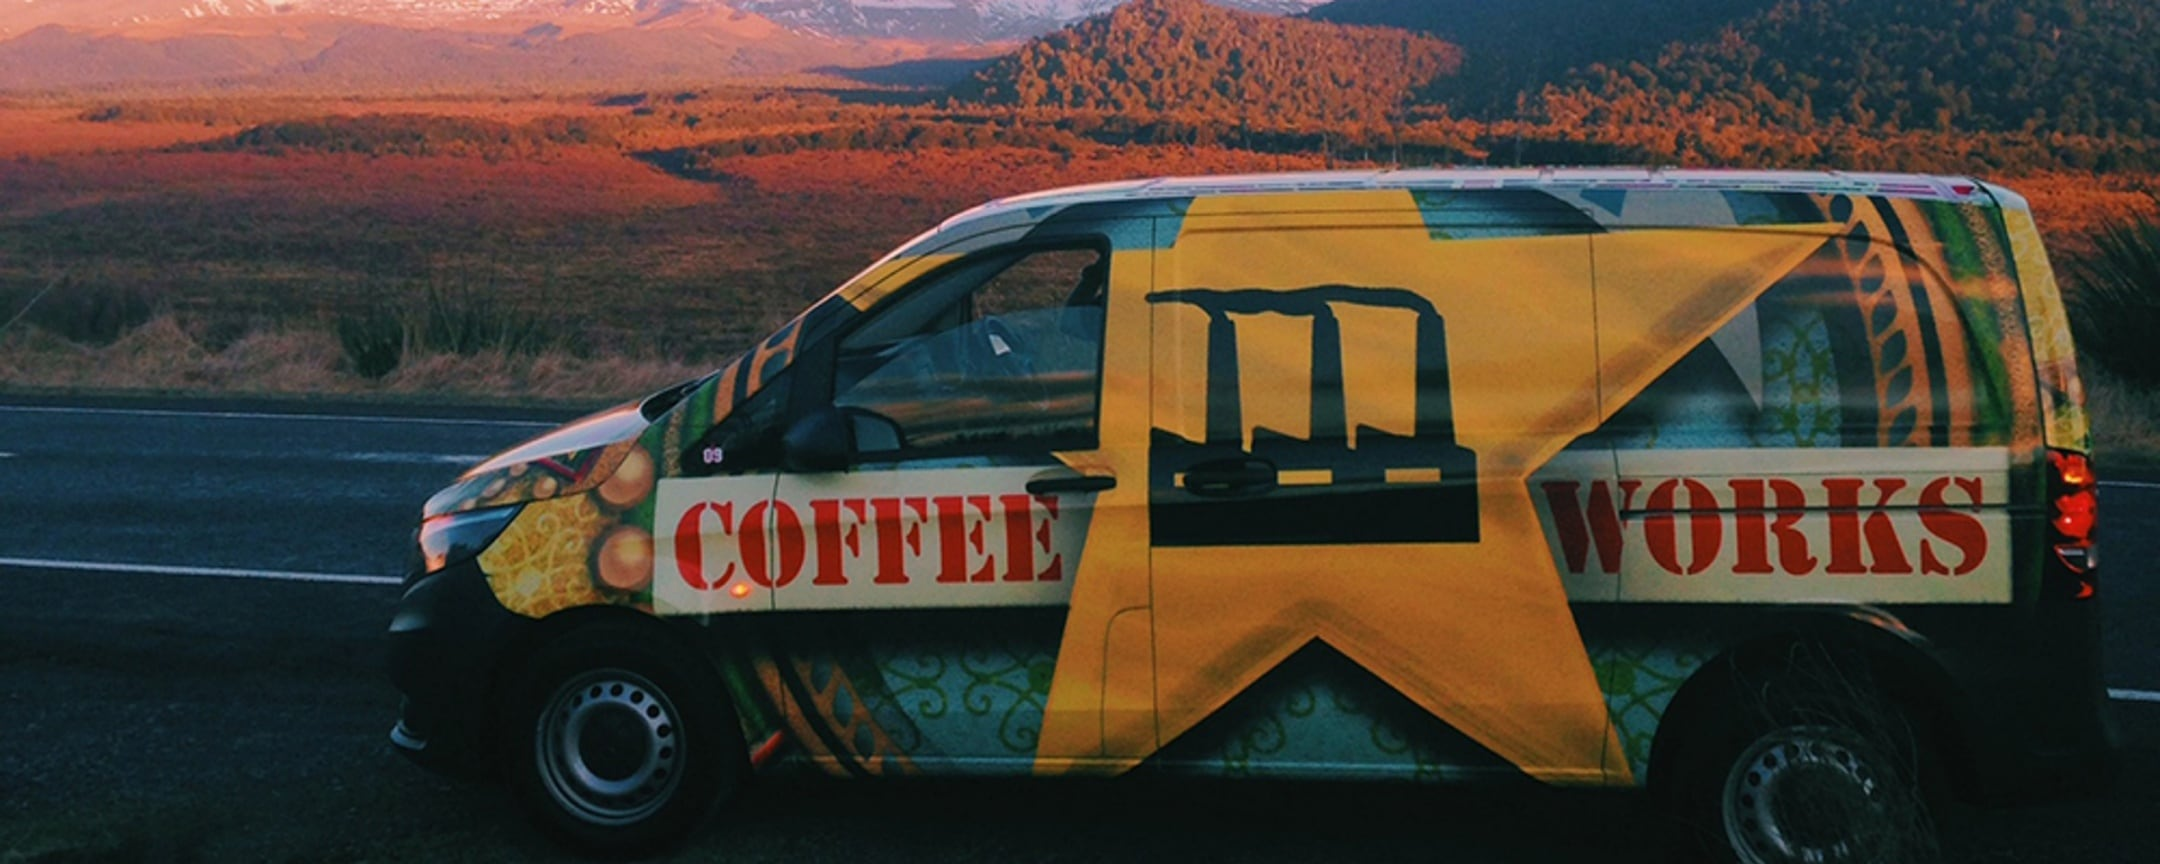 Vans, Love your work, Transforming new zealand cafe culture, Vito, Havana coffee, V6 diesel, Business